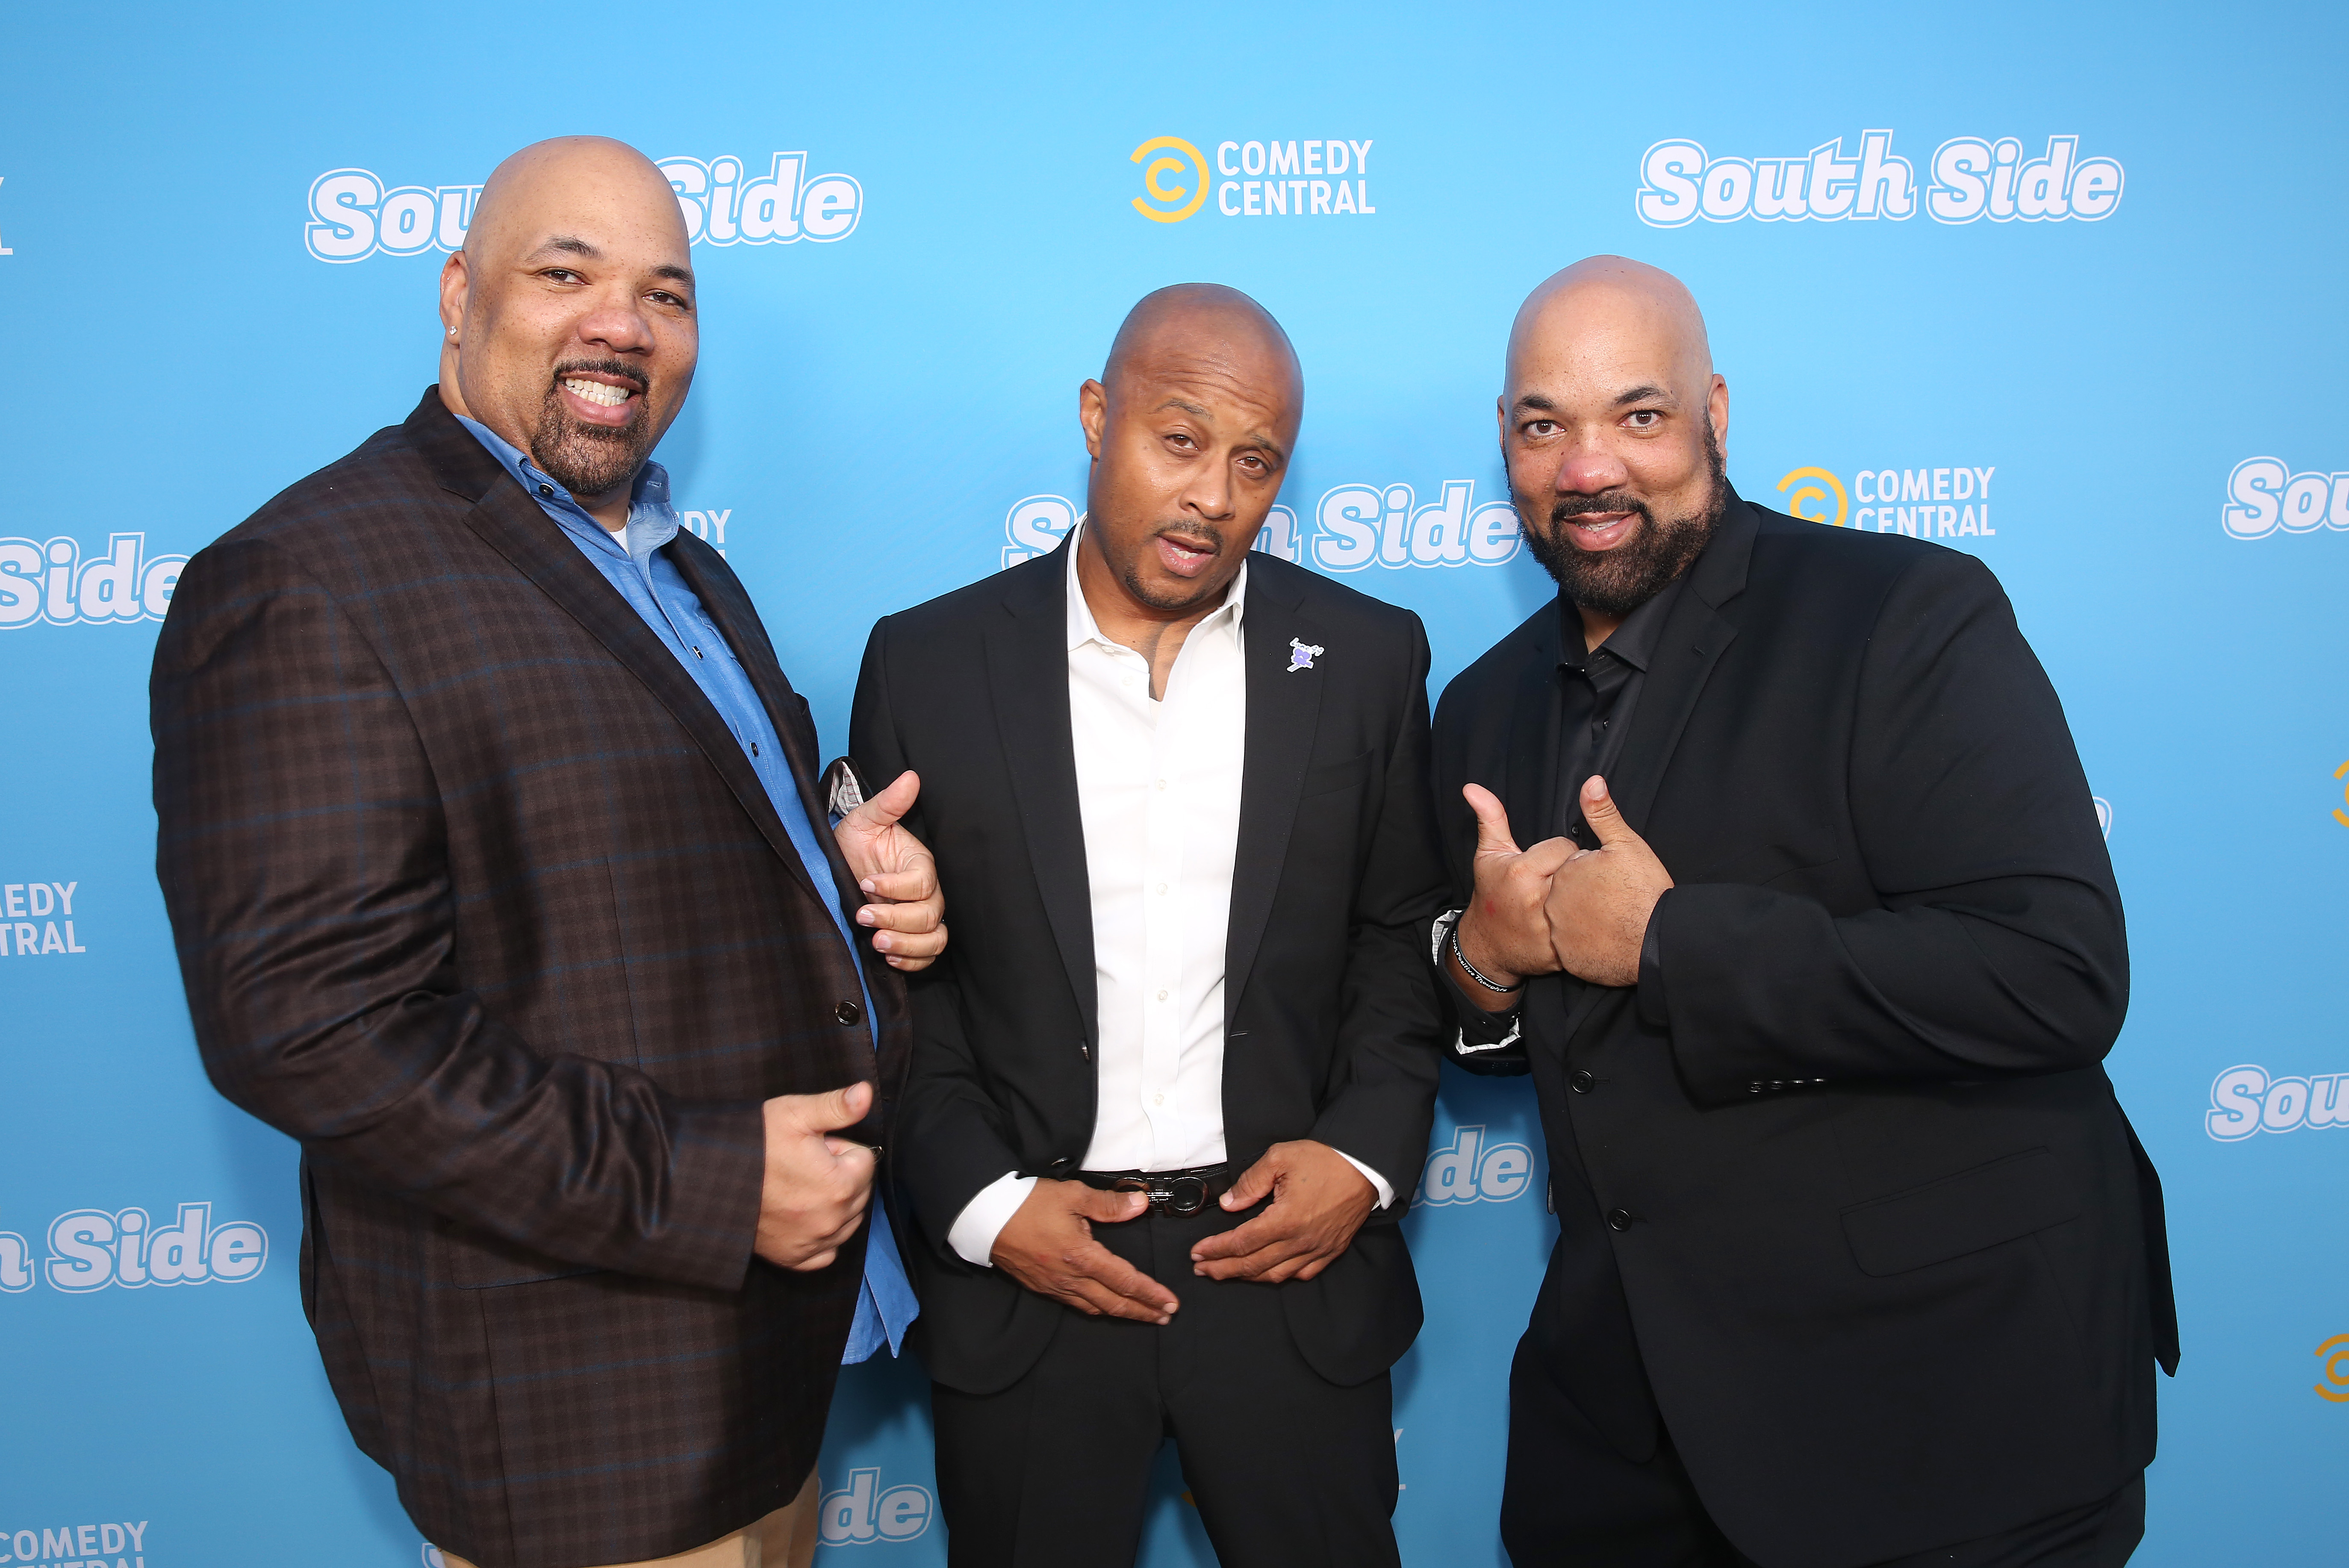 South Side 2019 Series Premiere Party